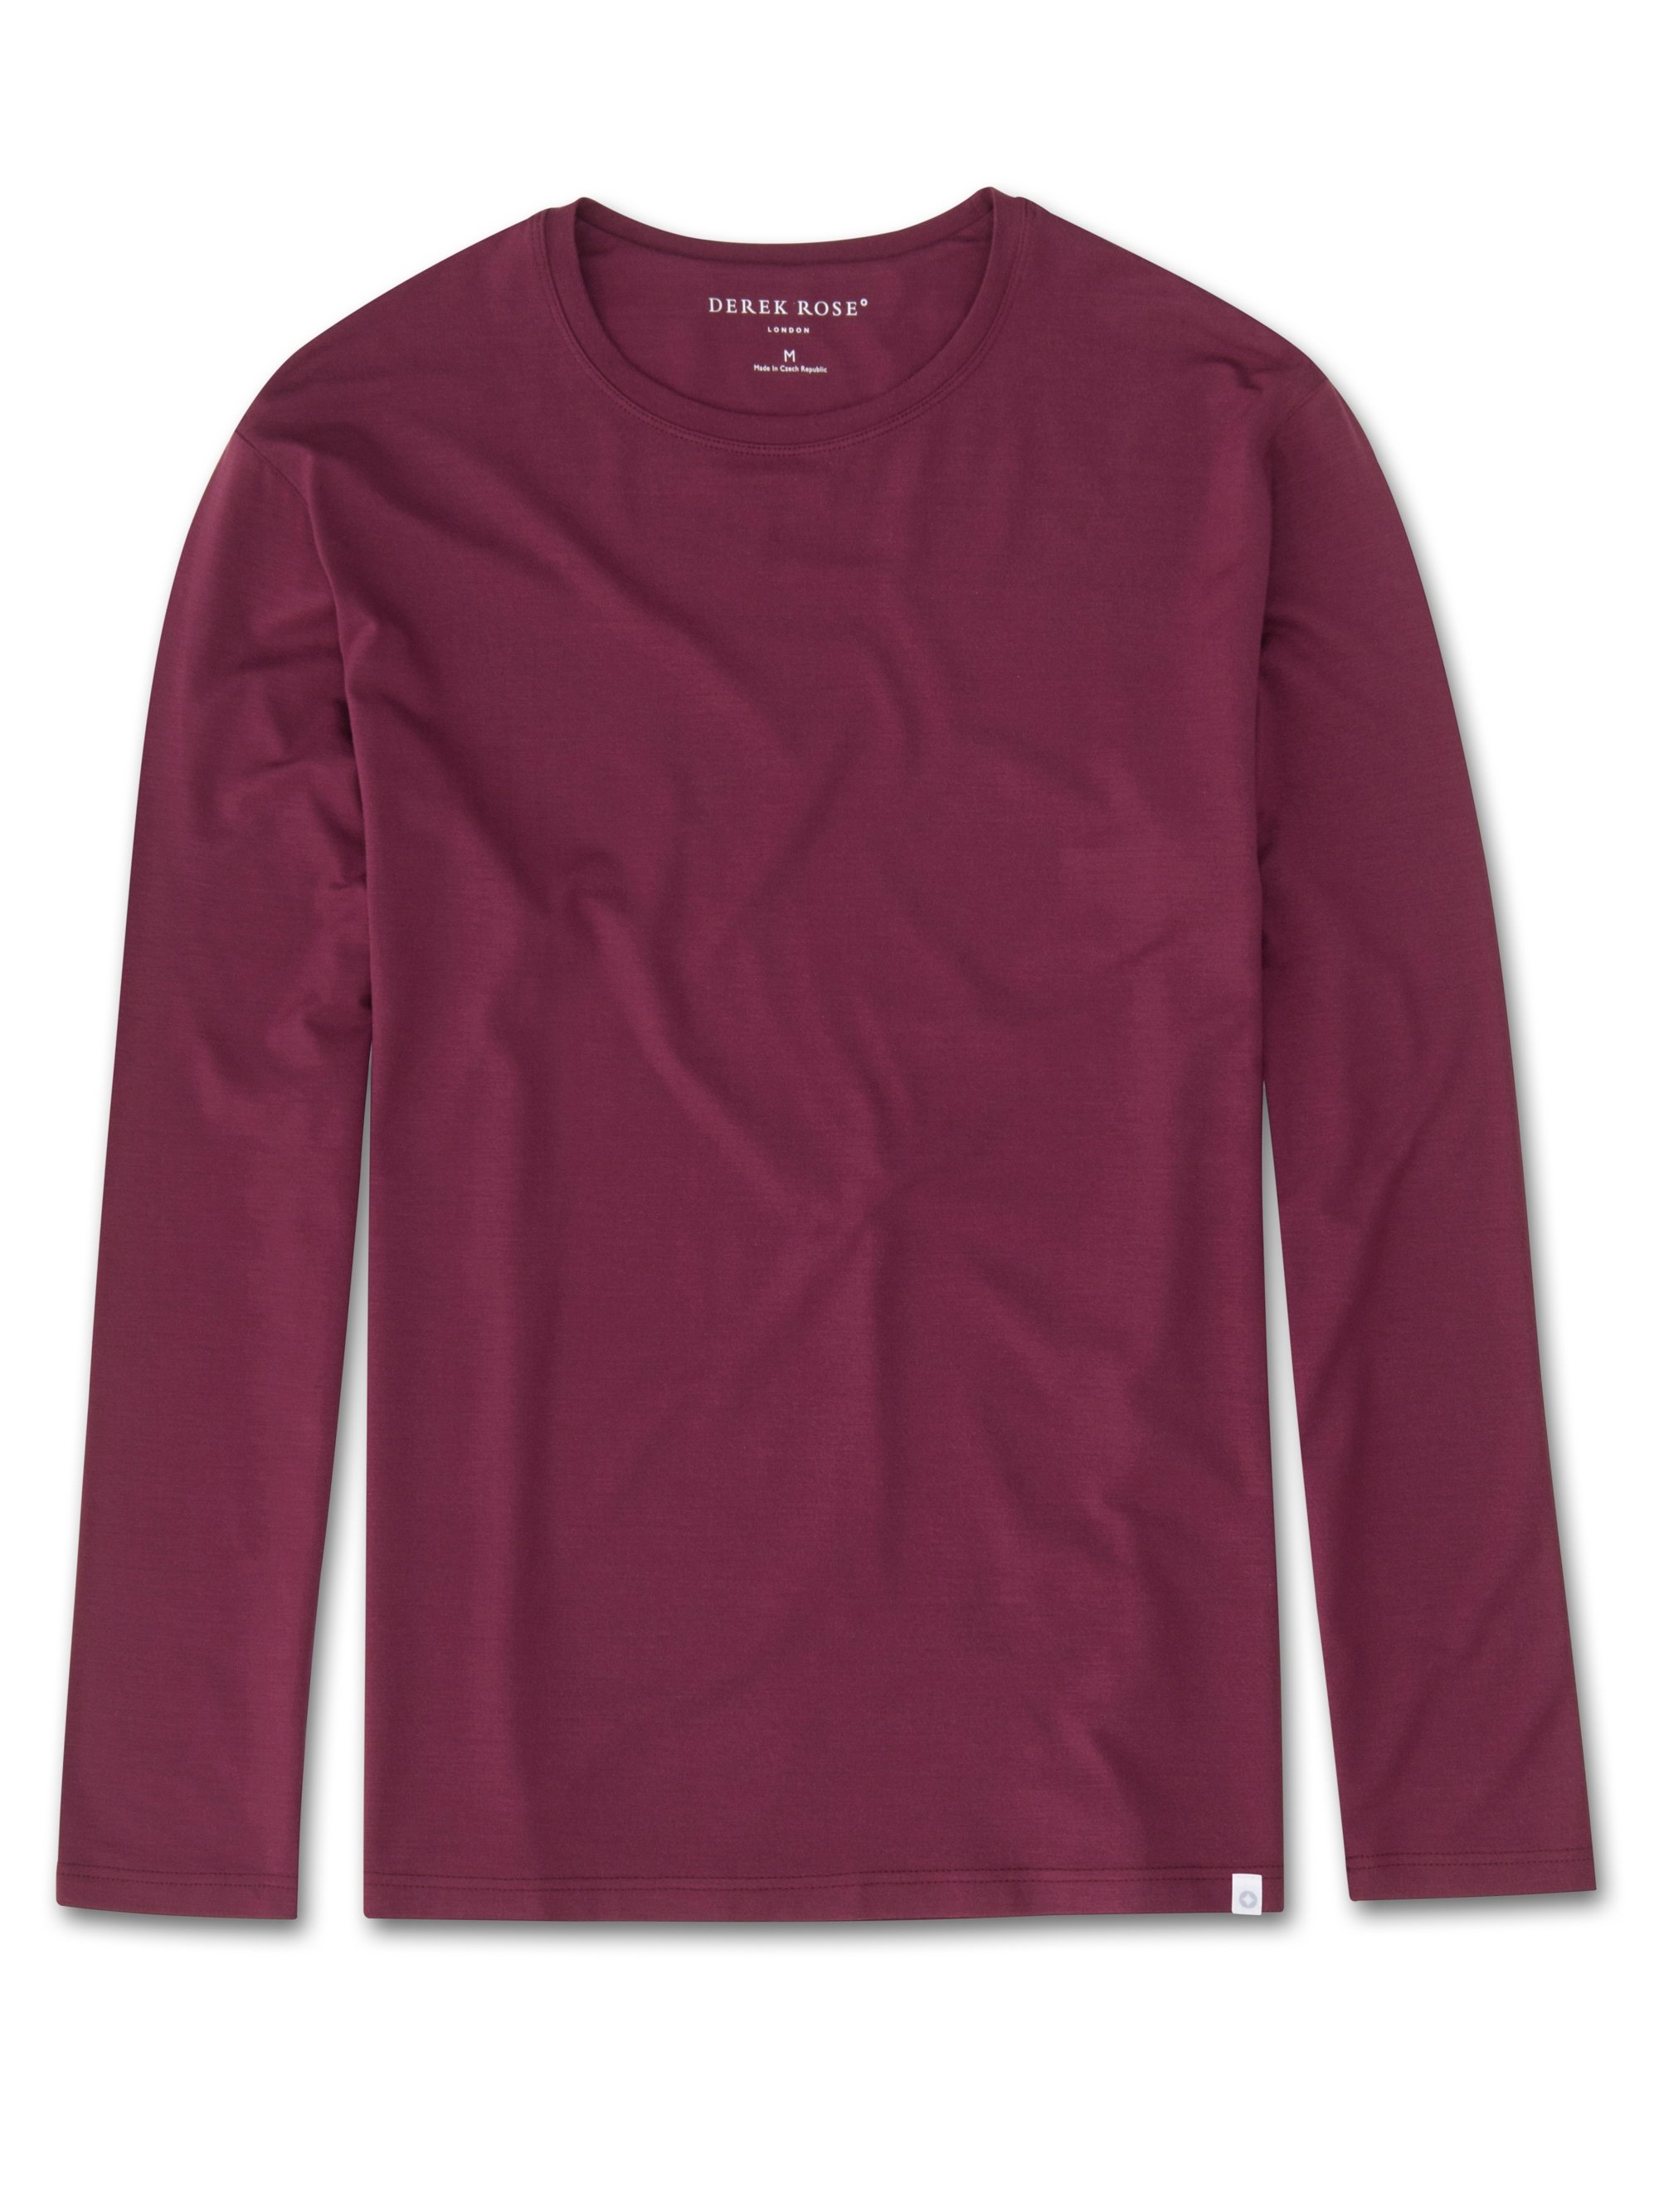 Men s Long Sleeve T-Shirt Basel 5 Micro Modal Stretch Burgundy ... ce4878871ad